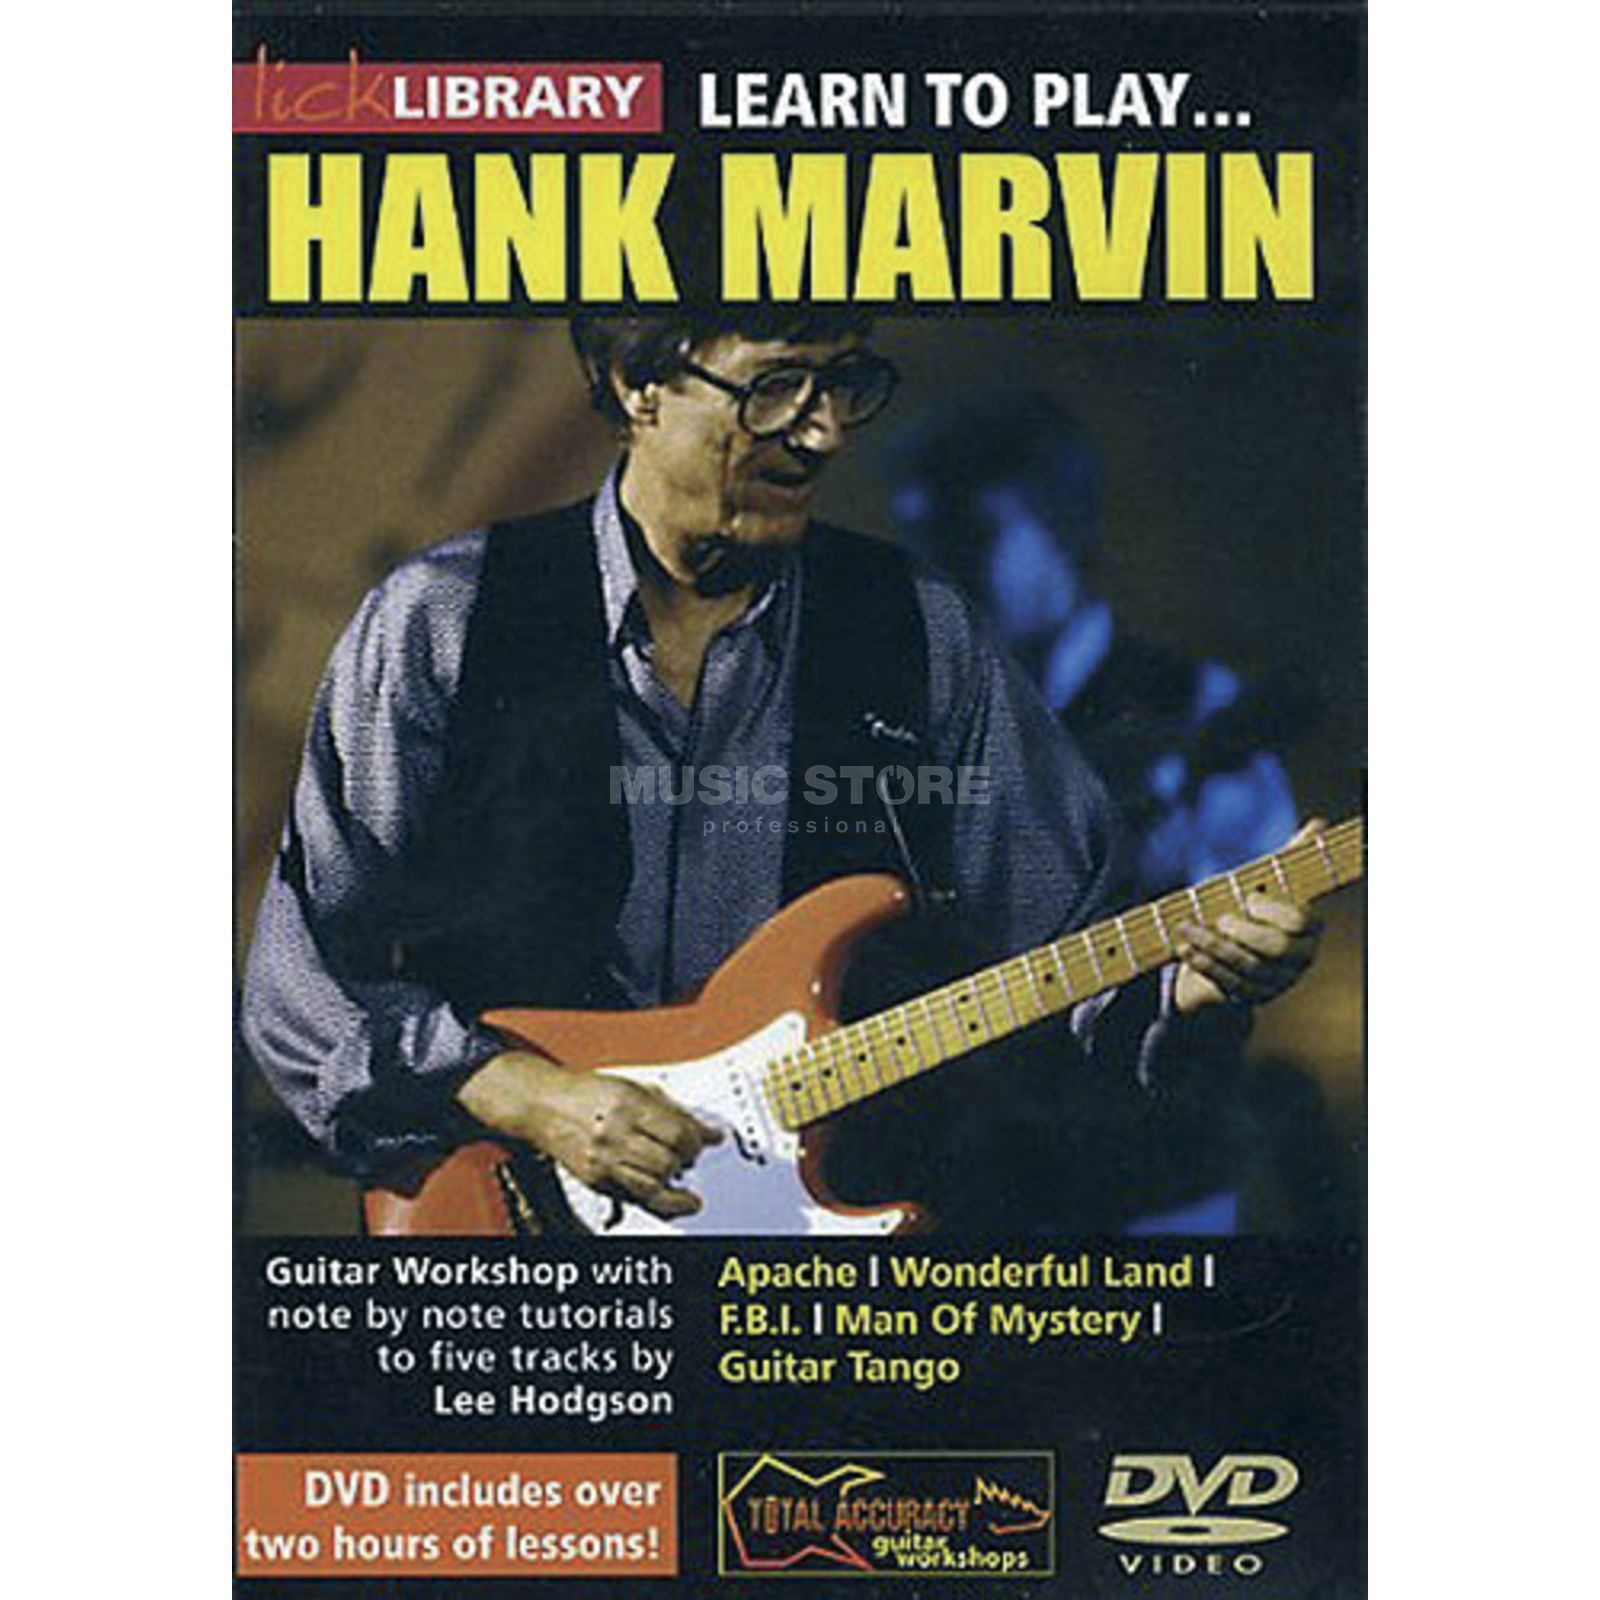 Roadrock International Lick Library: Learn To Play Hank Marvin DVD Produktbillede